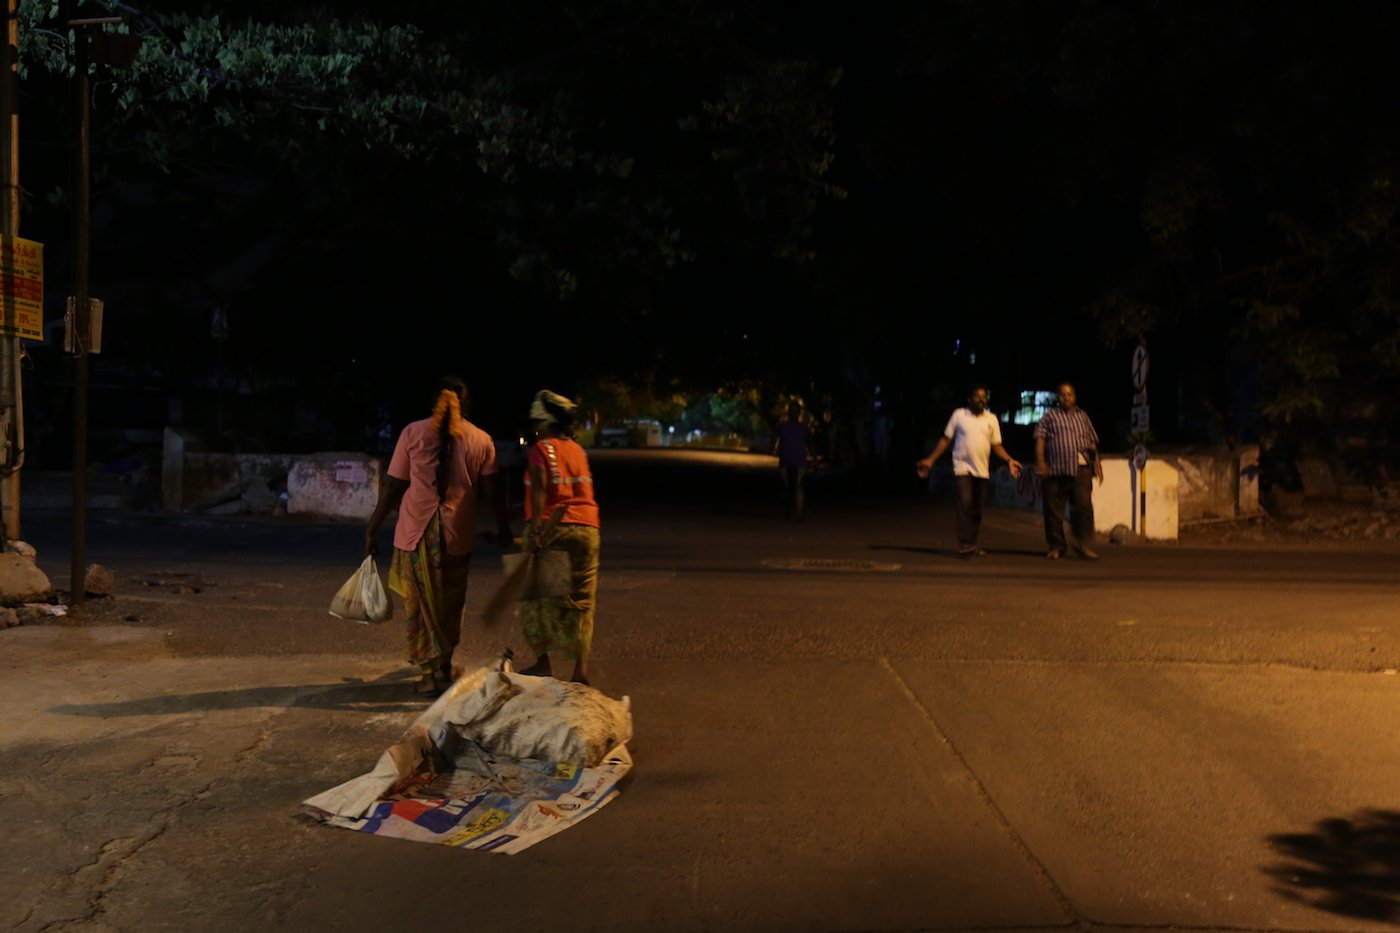 With just a few passers-by on the road at this late hour, they continue to quietly work to keep White Town clean